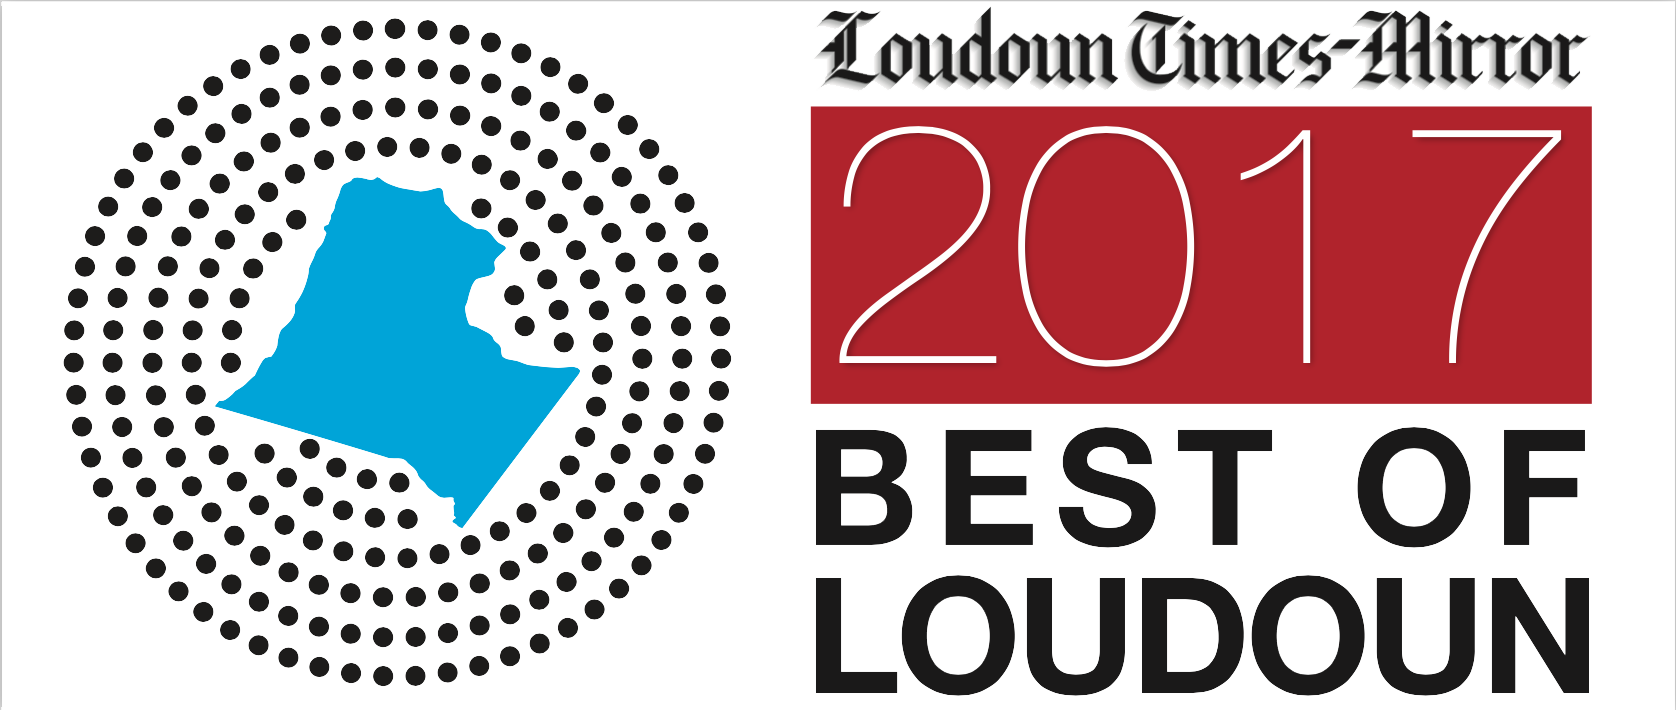 Loudoun Times-Mirror Best of 2017